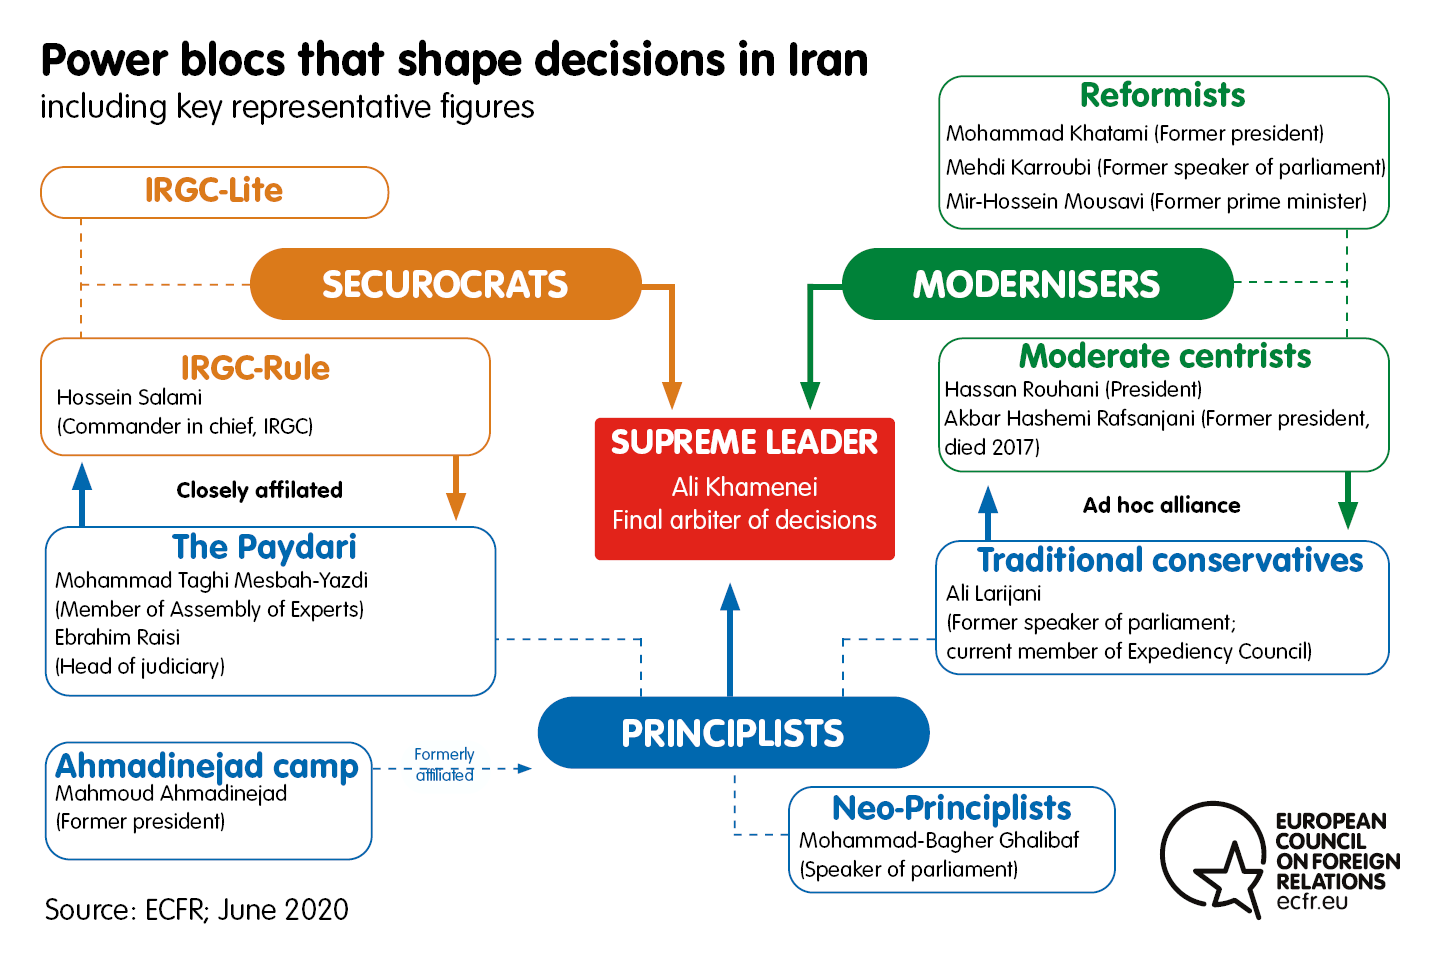 Chart of the power blocs that shape decisions in Iran